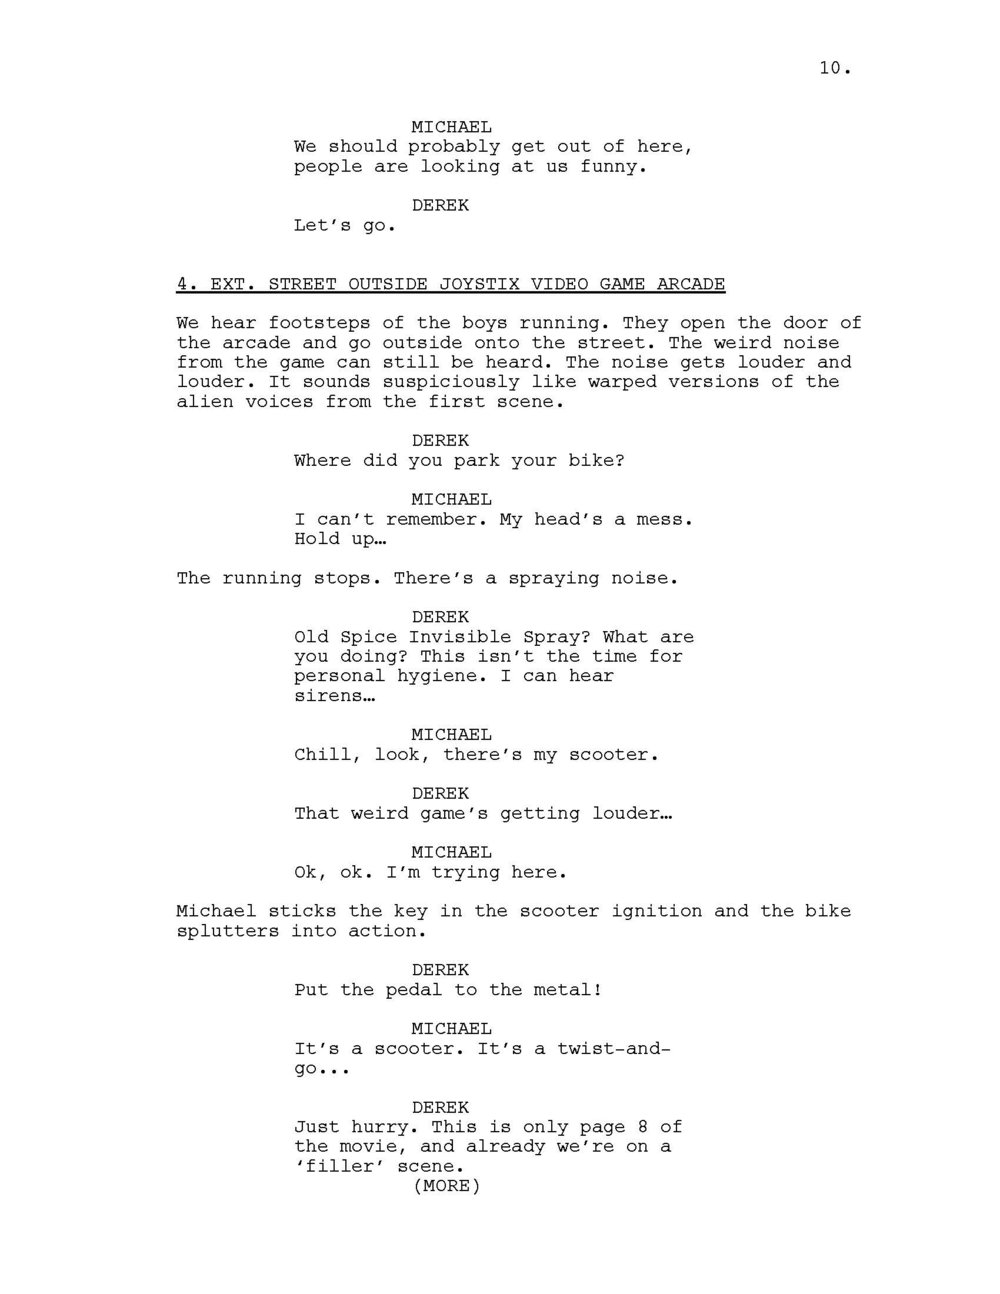 INVISIBLE WORLD SCRIPT_Page_011.jpg